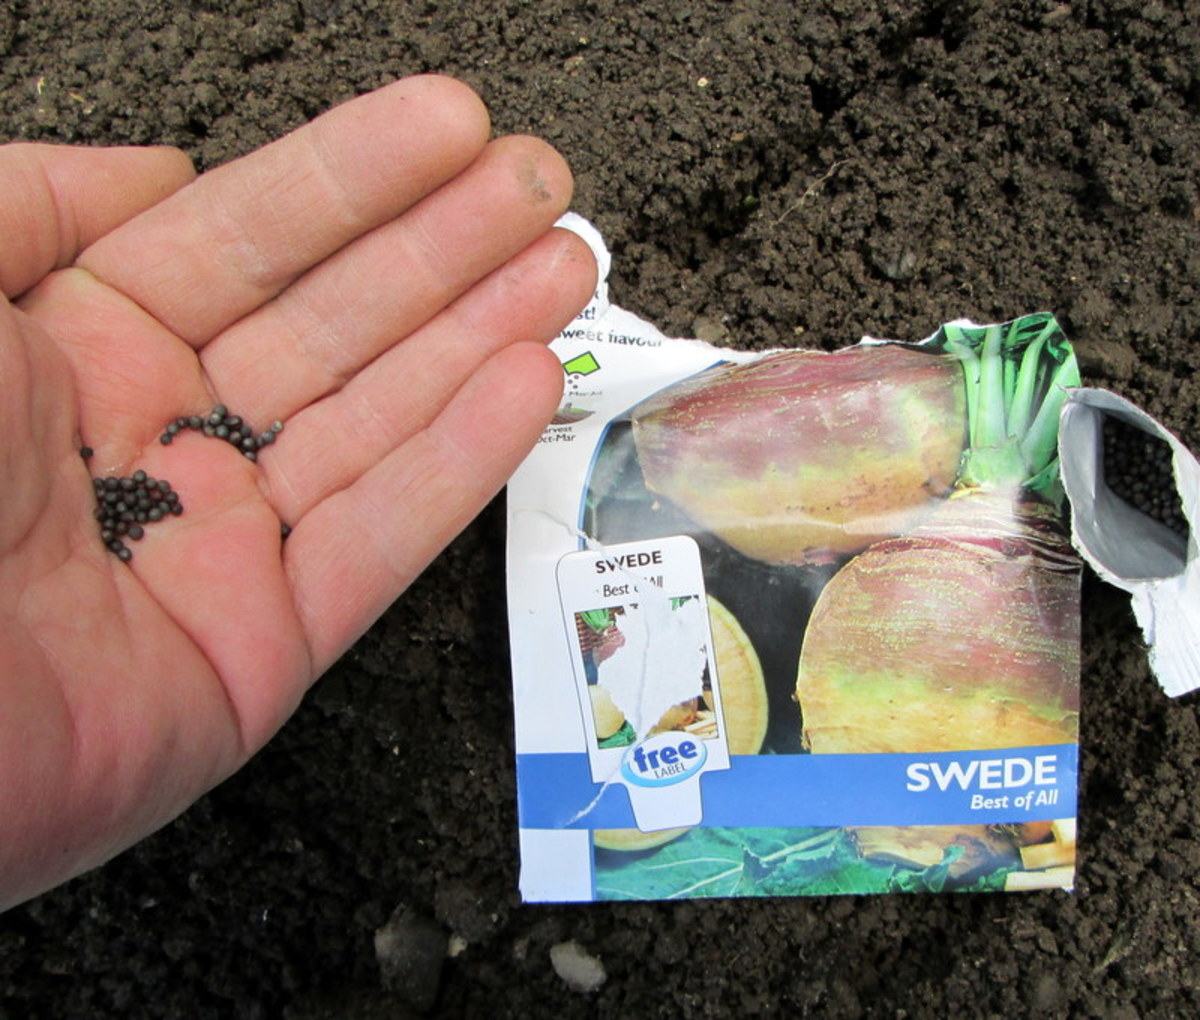 When to plant swede seeds